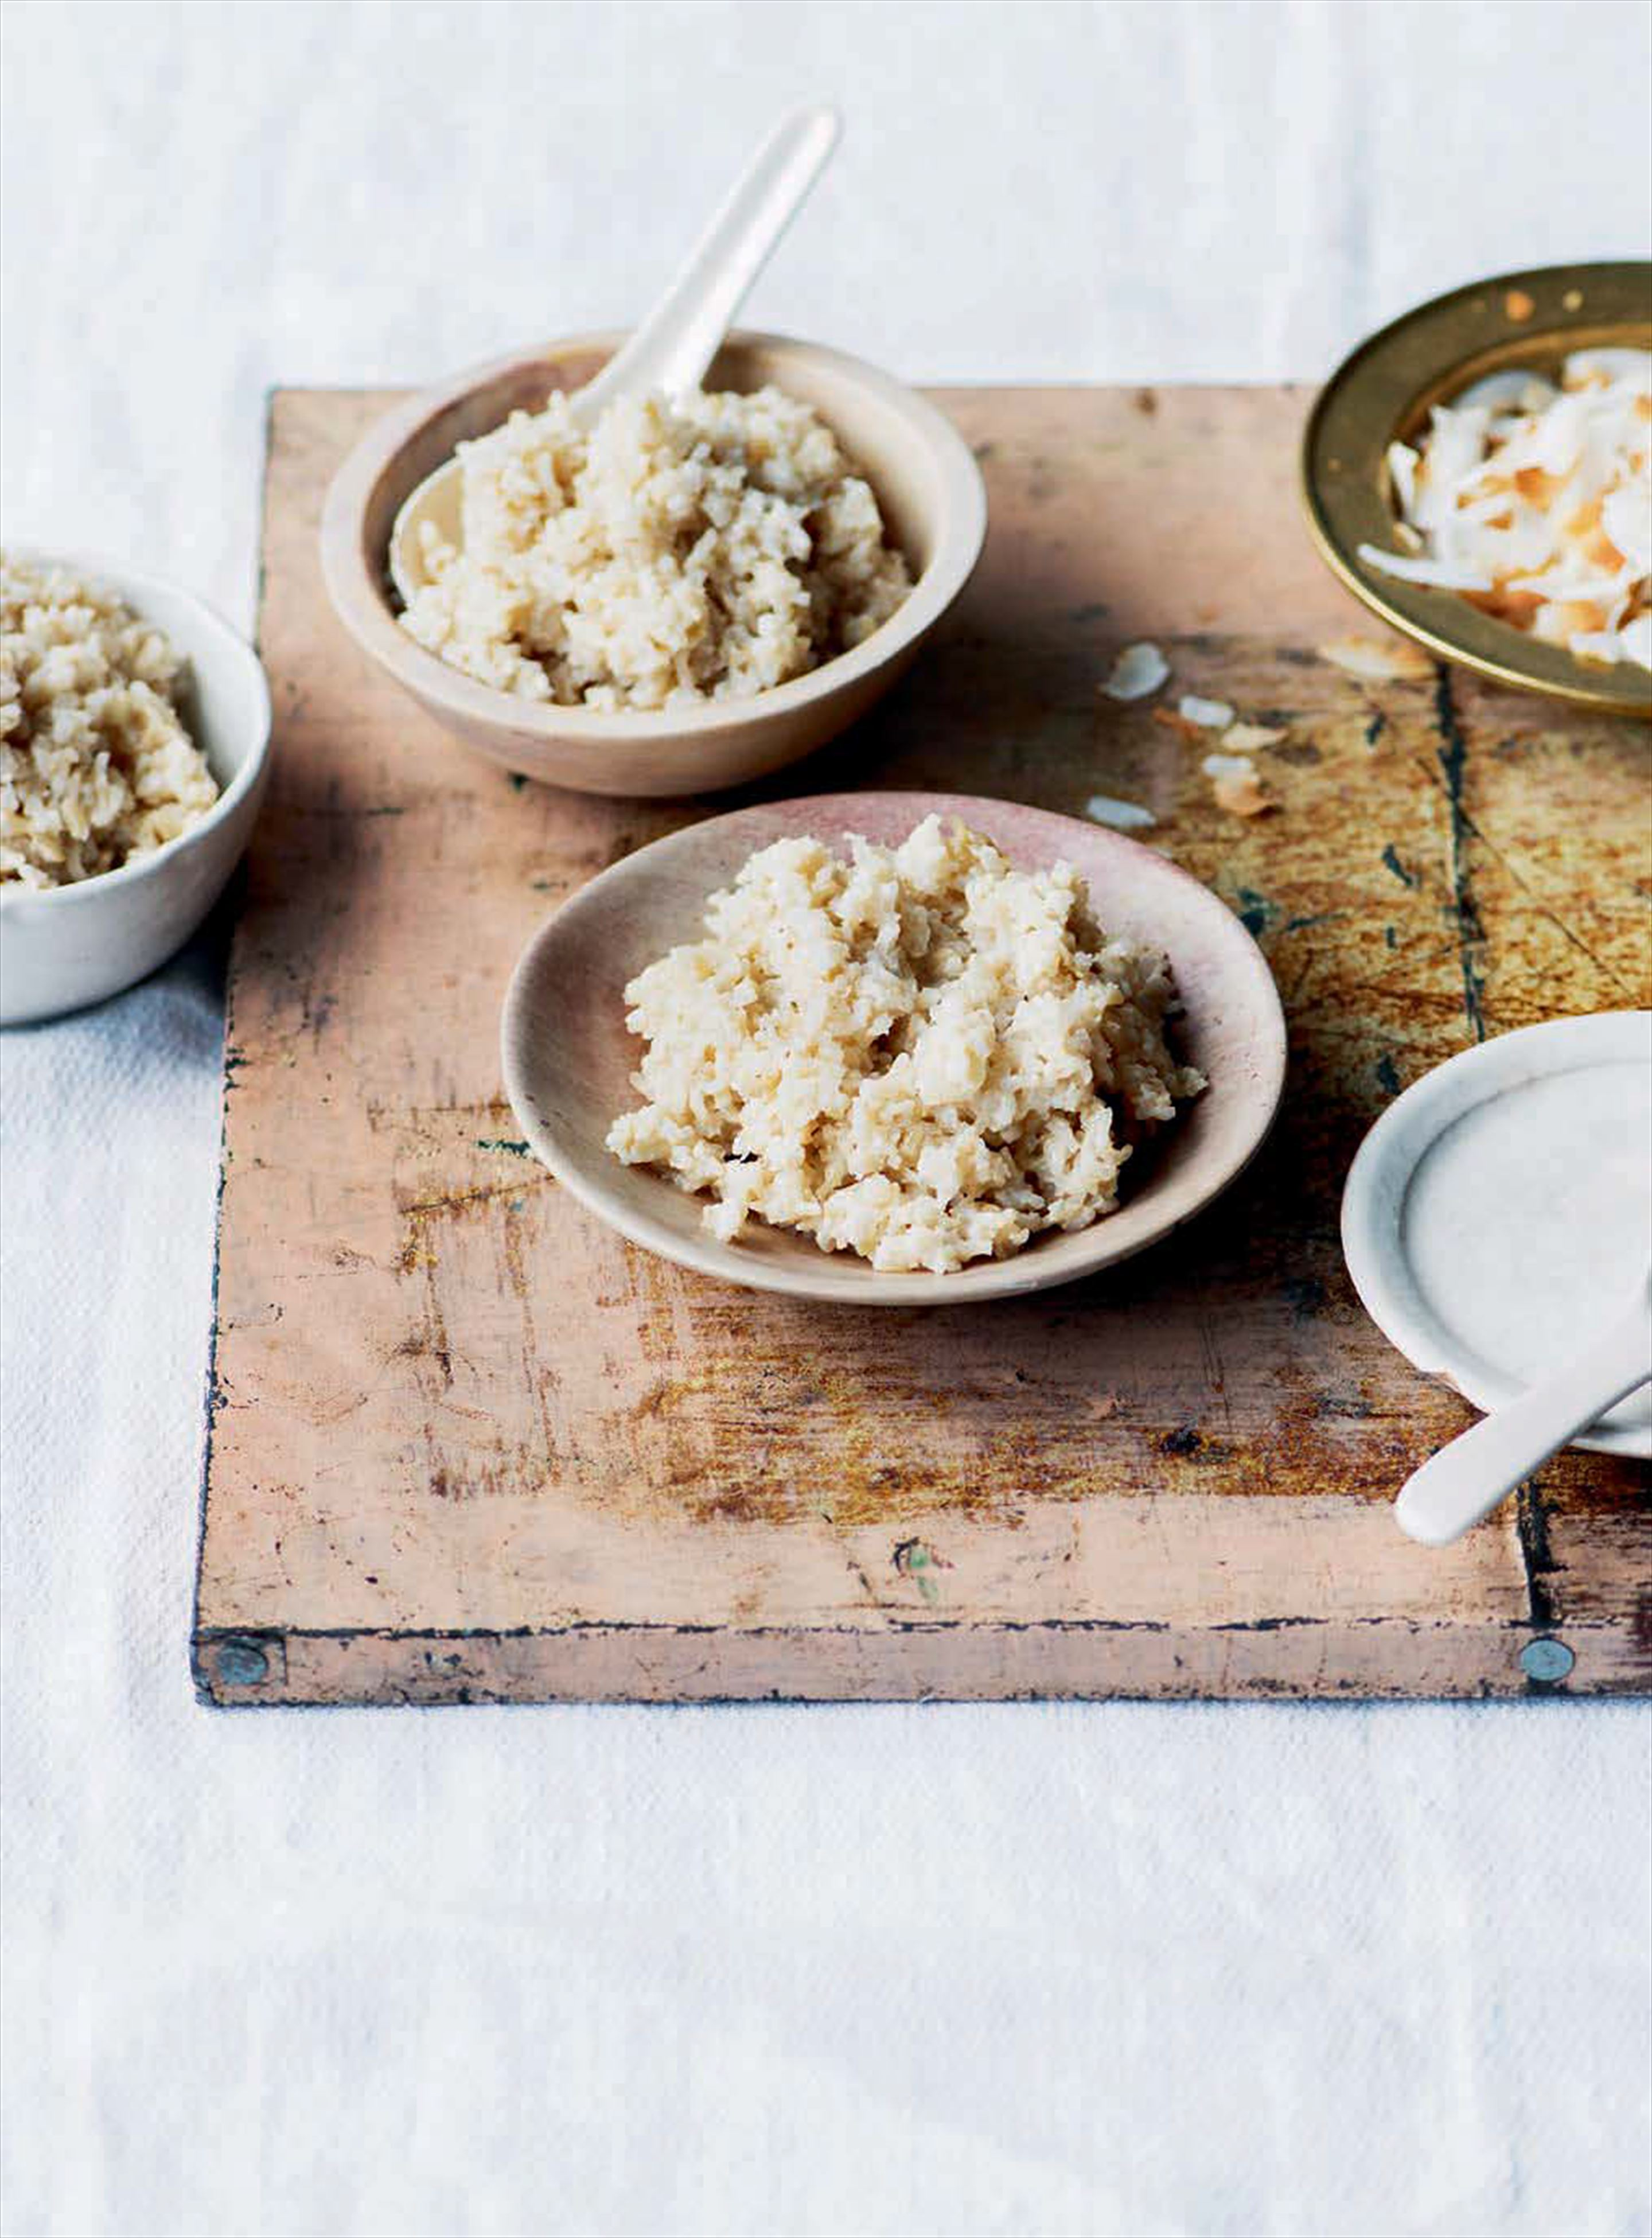 Asian-style coconut rice